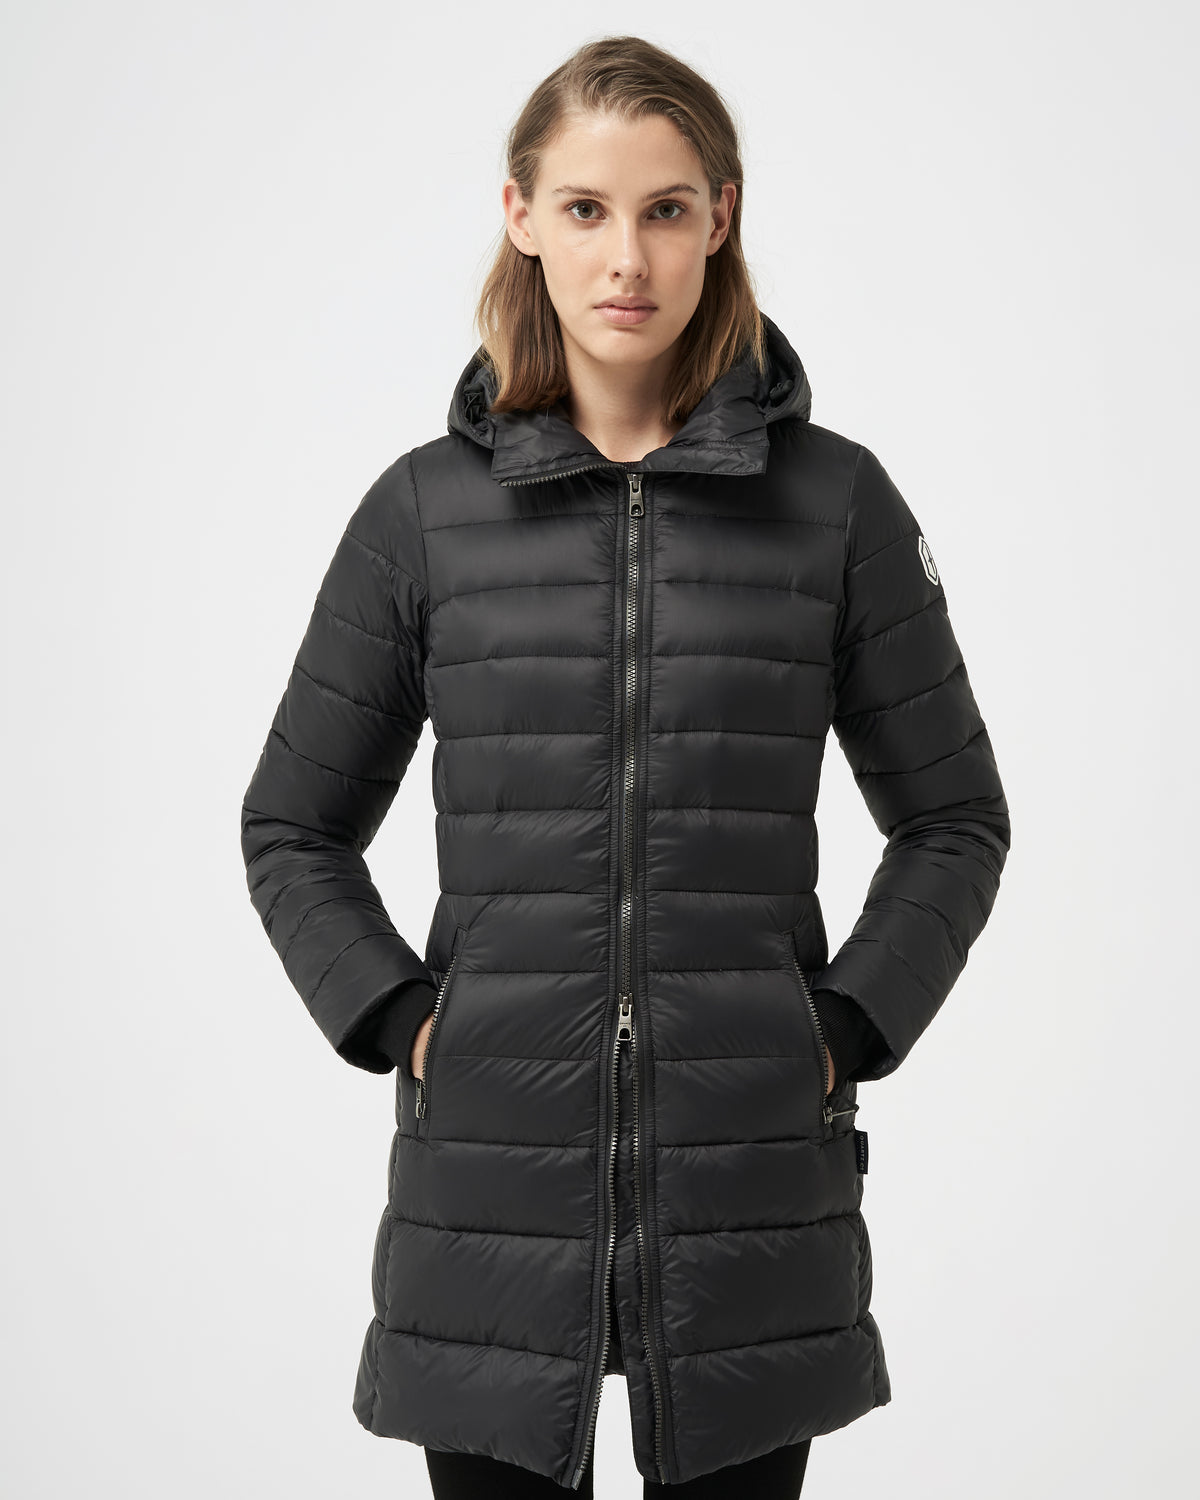 Quartz Co. - Canadian Made Winter Jackets | Women | Lausanne | Women Down Lightweight jacket | Matte Black